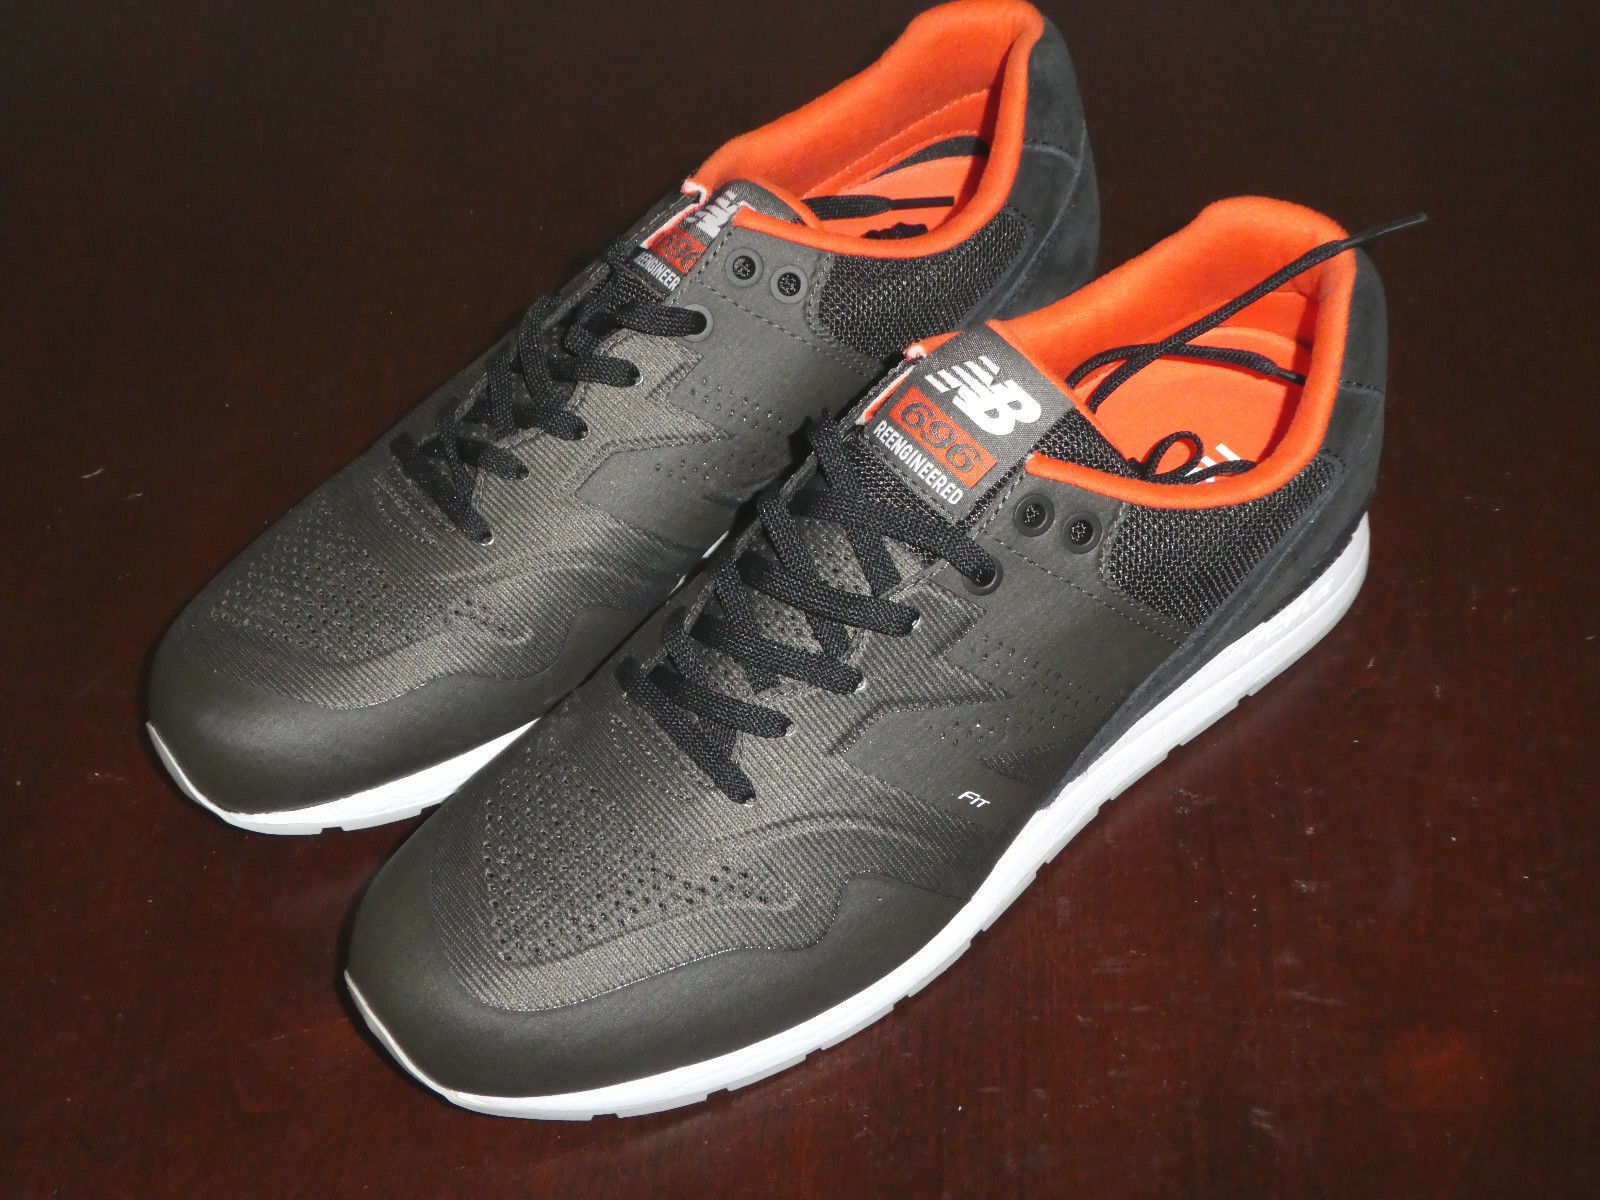 New Balance Mens shoes 696 Sneakers MRL696FZ Size 9.5